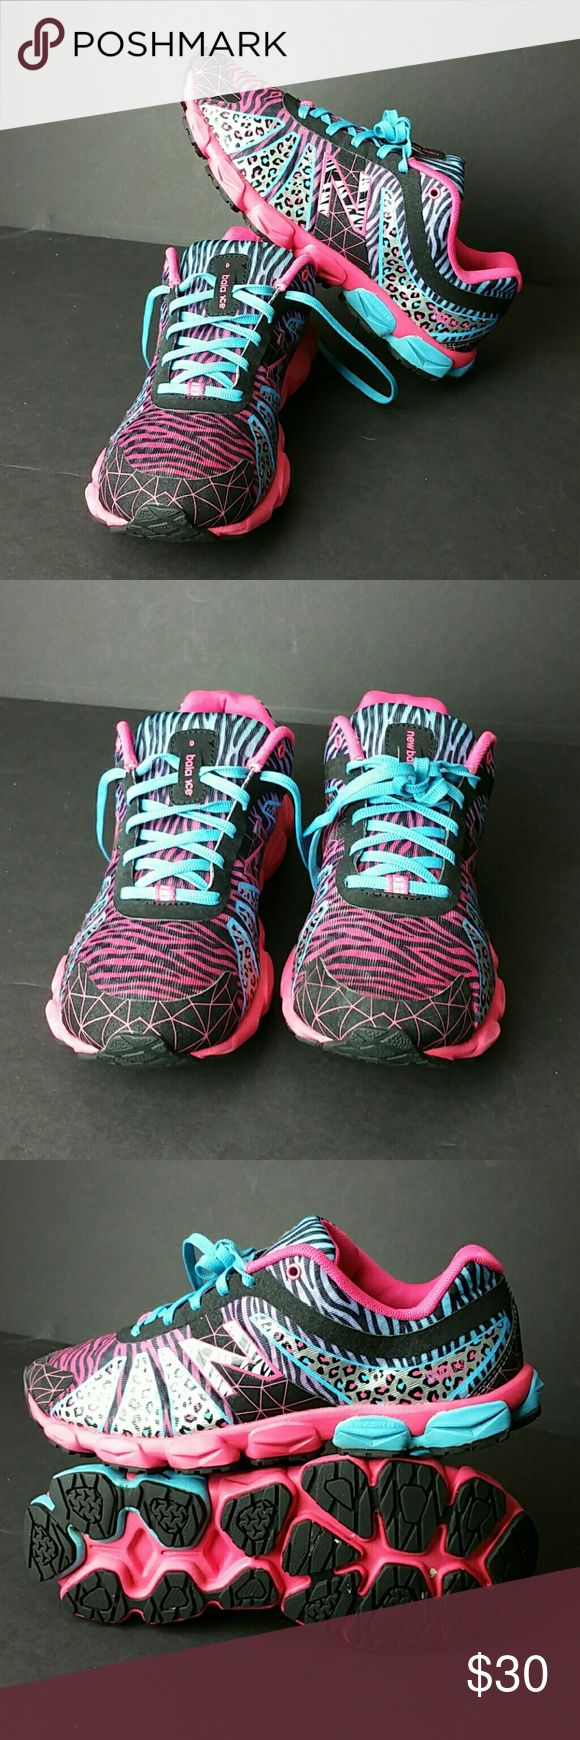 NEW BALANCE 890 GIRLS SHOES IN GOOD CONDITION   GIRLS SIZE 5 BIG KIDS   SKE # PA New Balance Shoes Sneakers